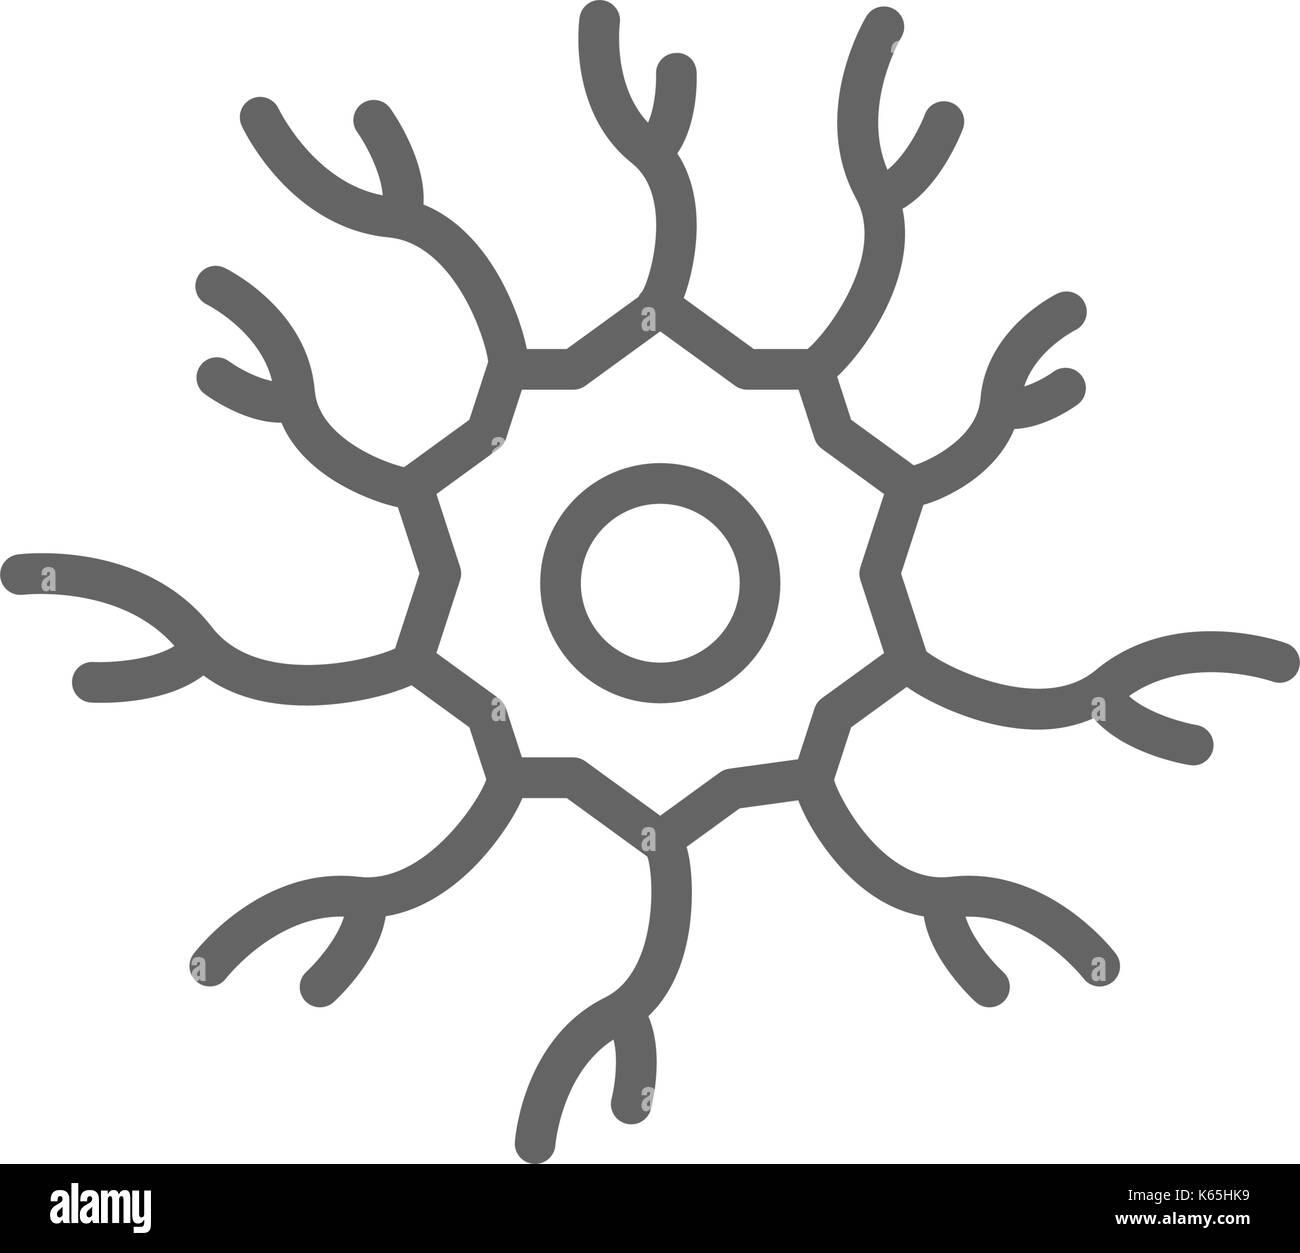 Simple neuron, nerve line icon. Symbol and sign vector illustration design. Editable Stroke. Isolated on white background - Stock Image